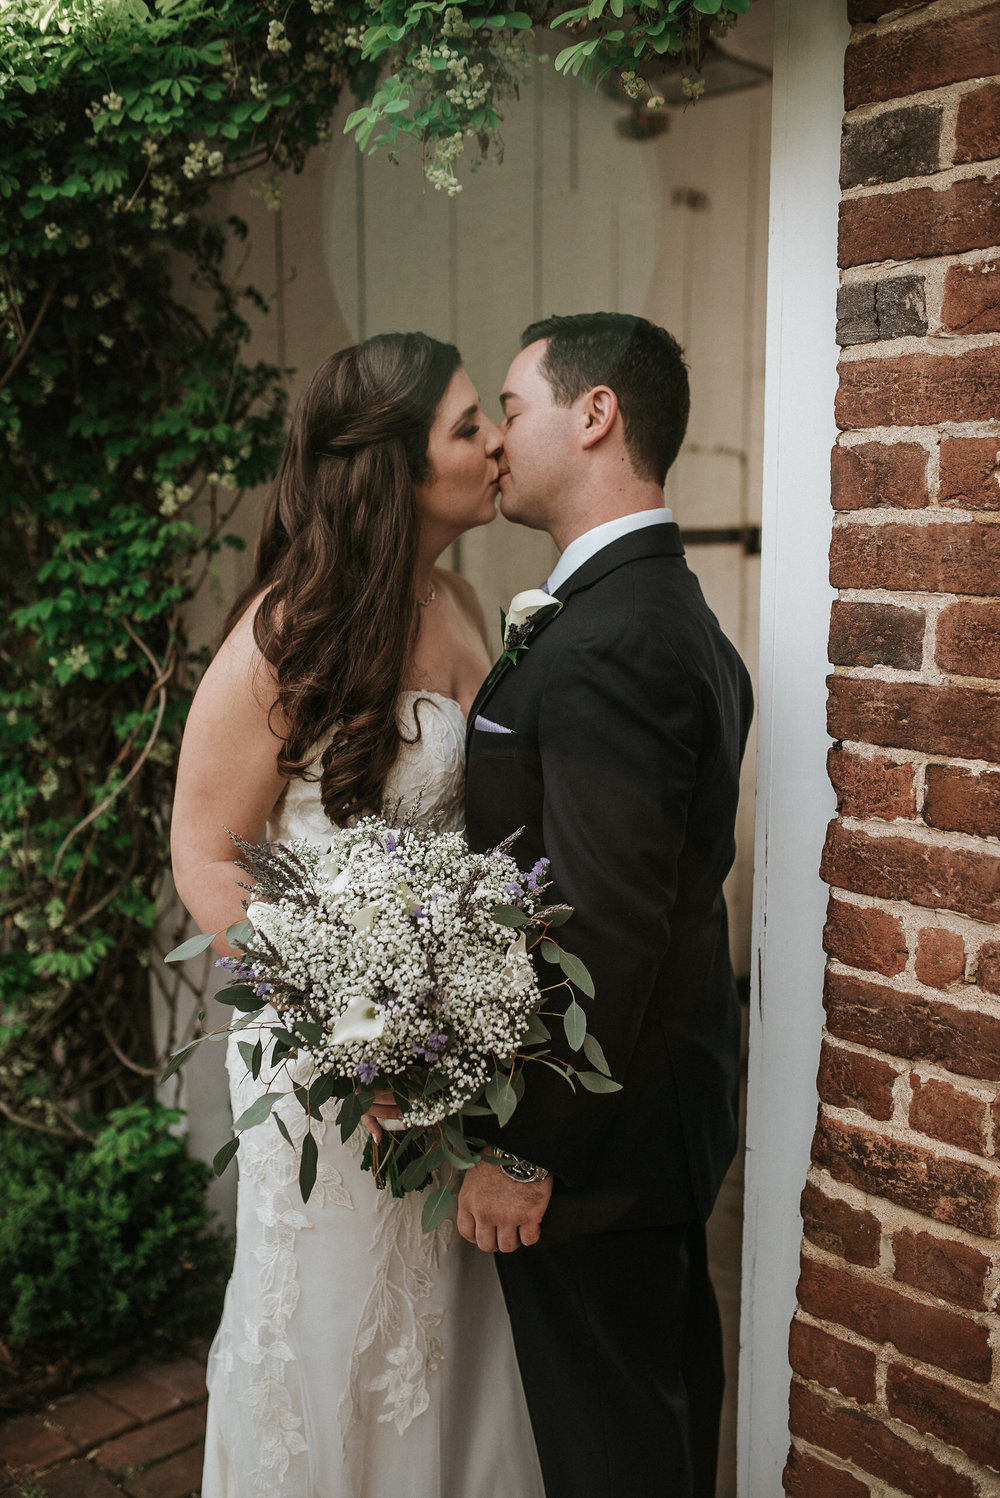 Bride and groom kissing before wedding